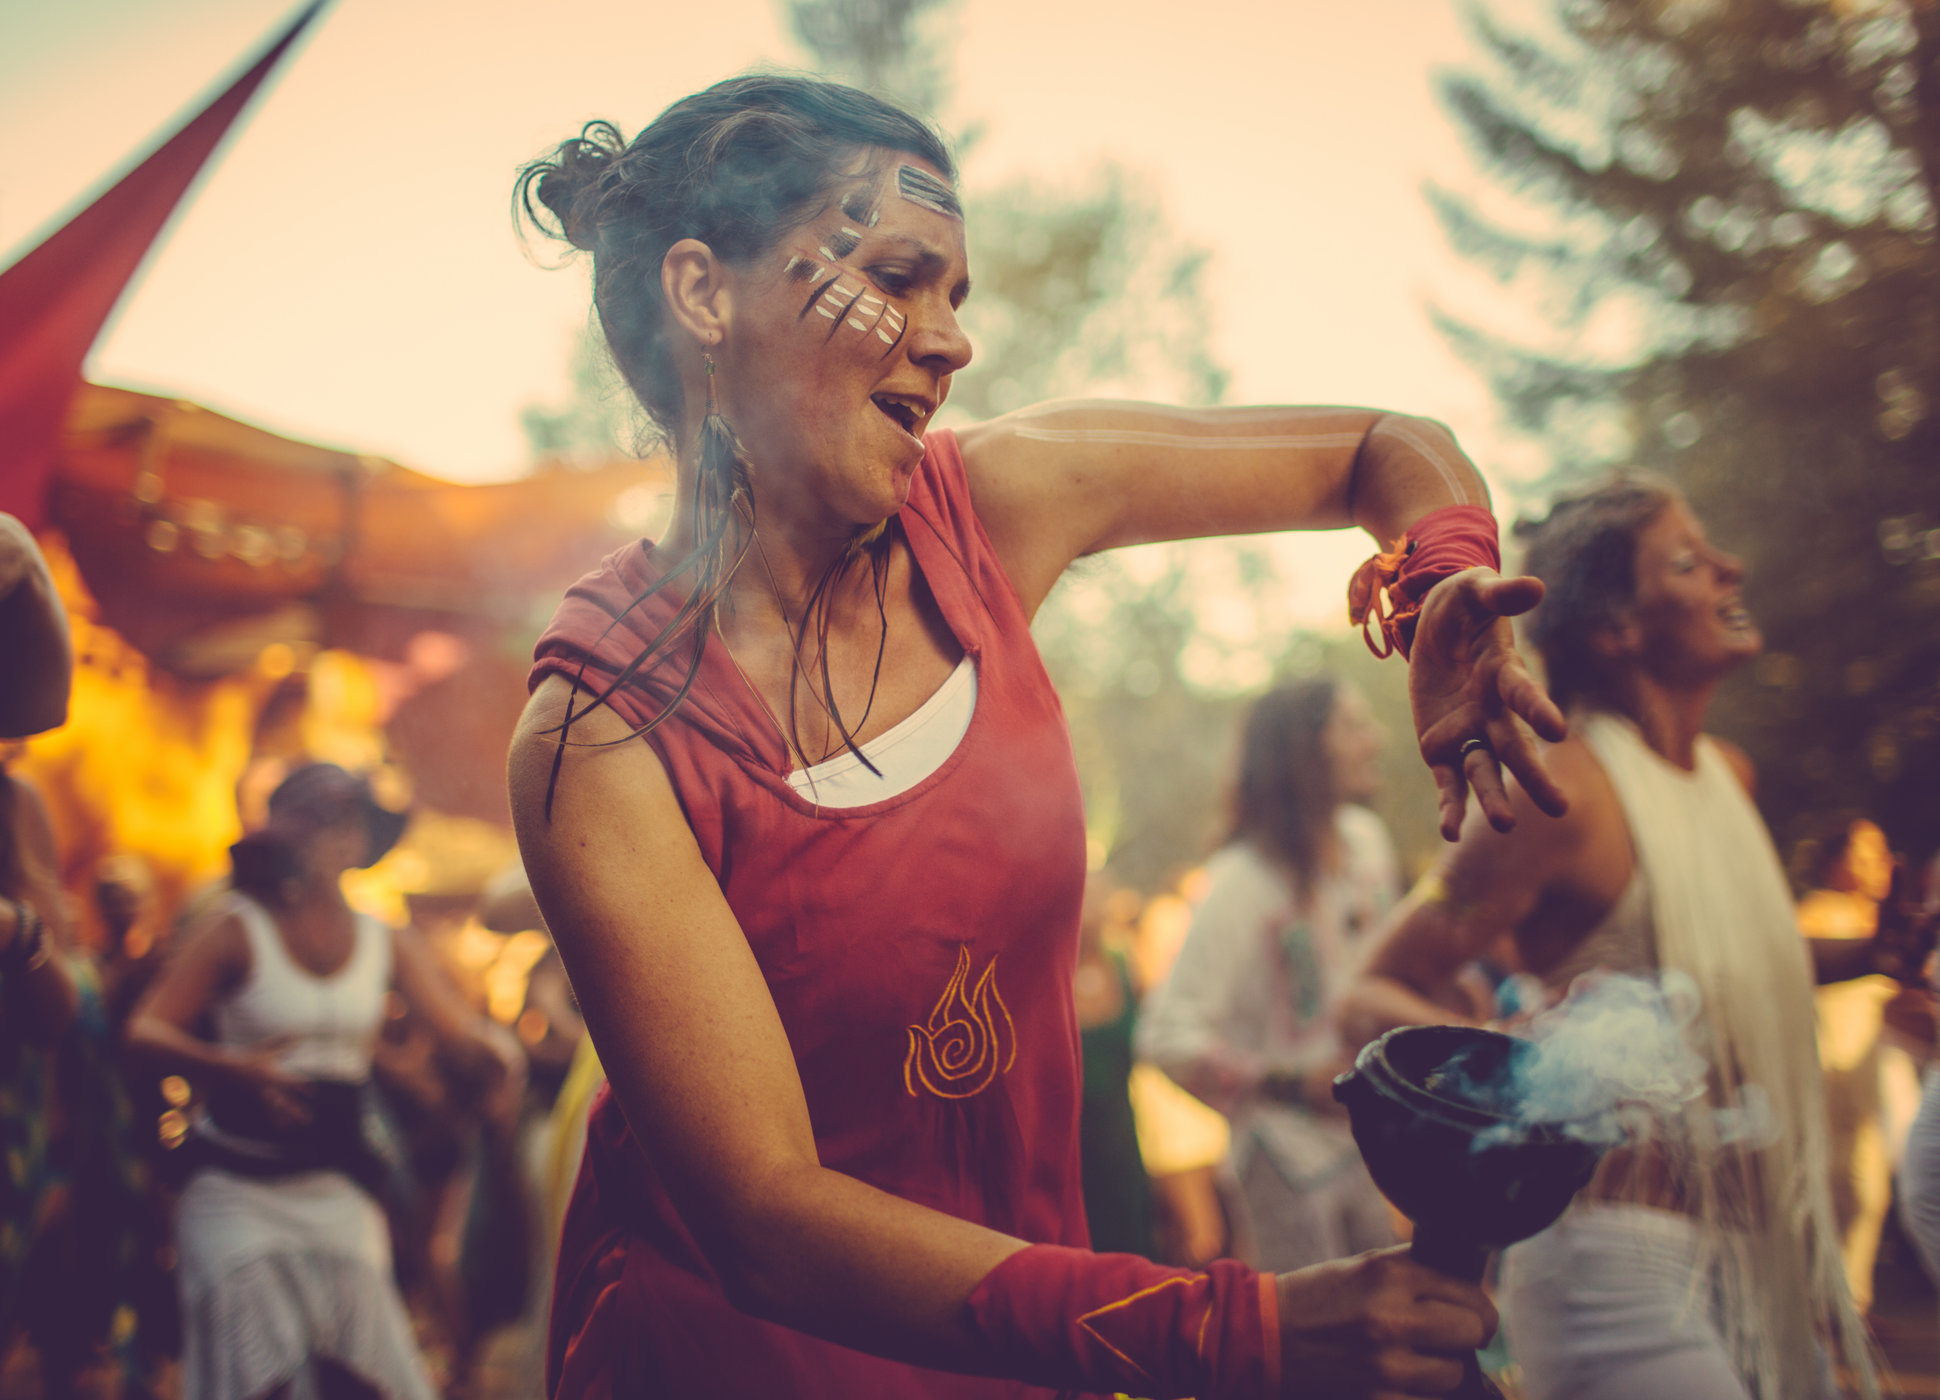 Best Hippie Parties & Music Festivals in America in 2018